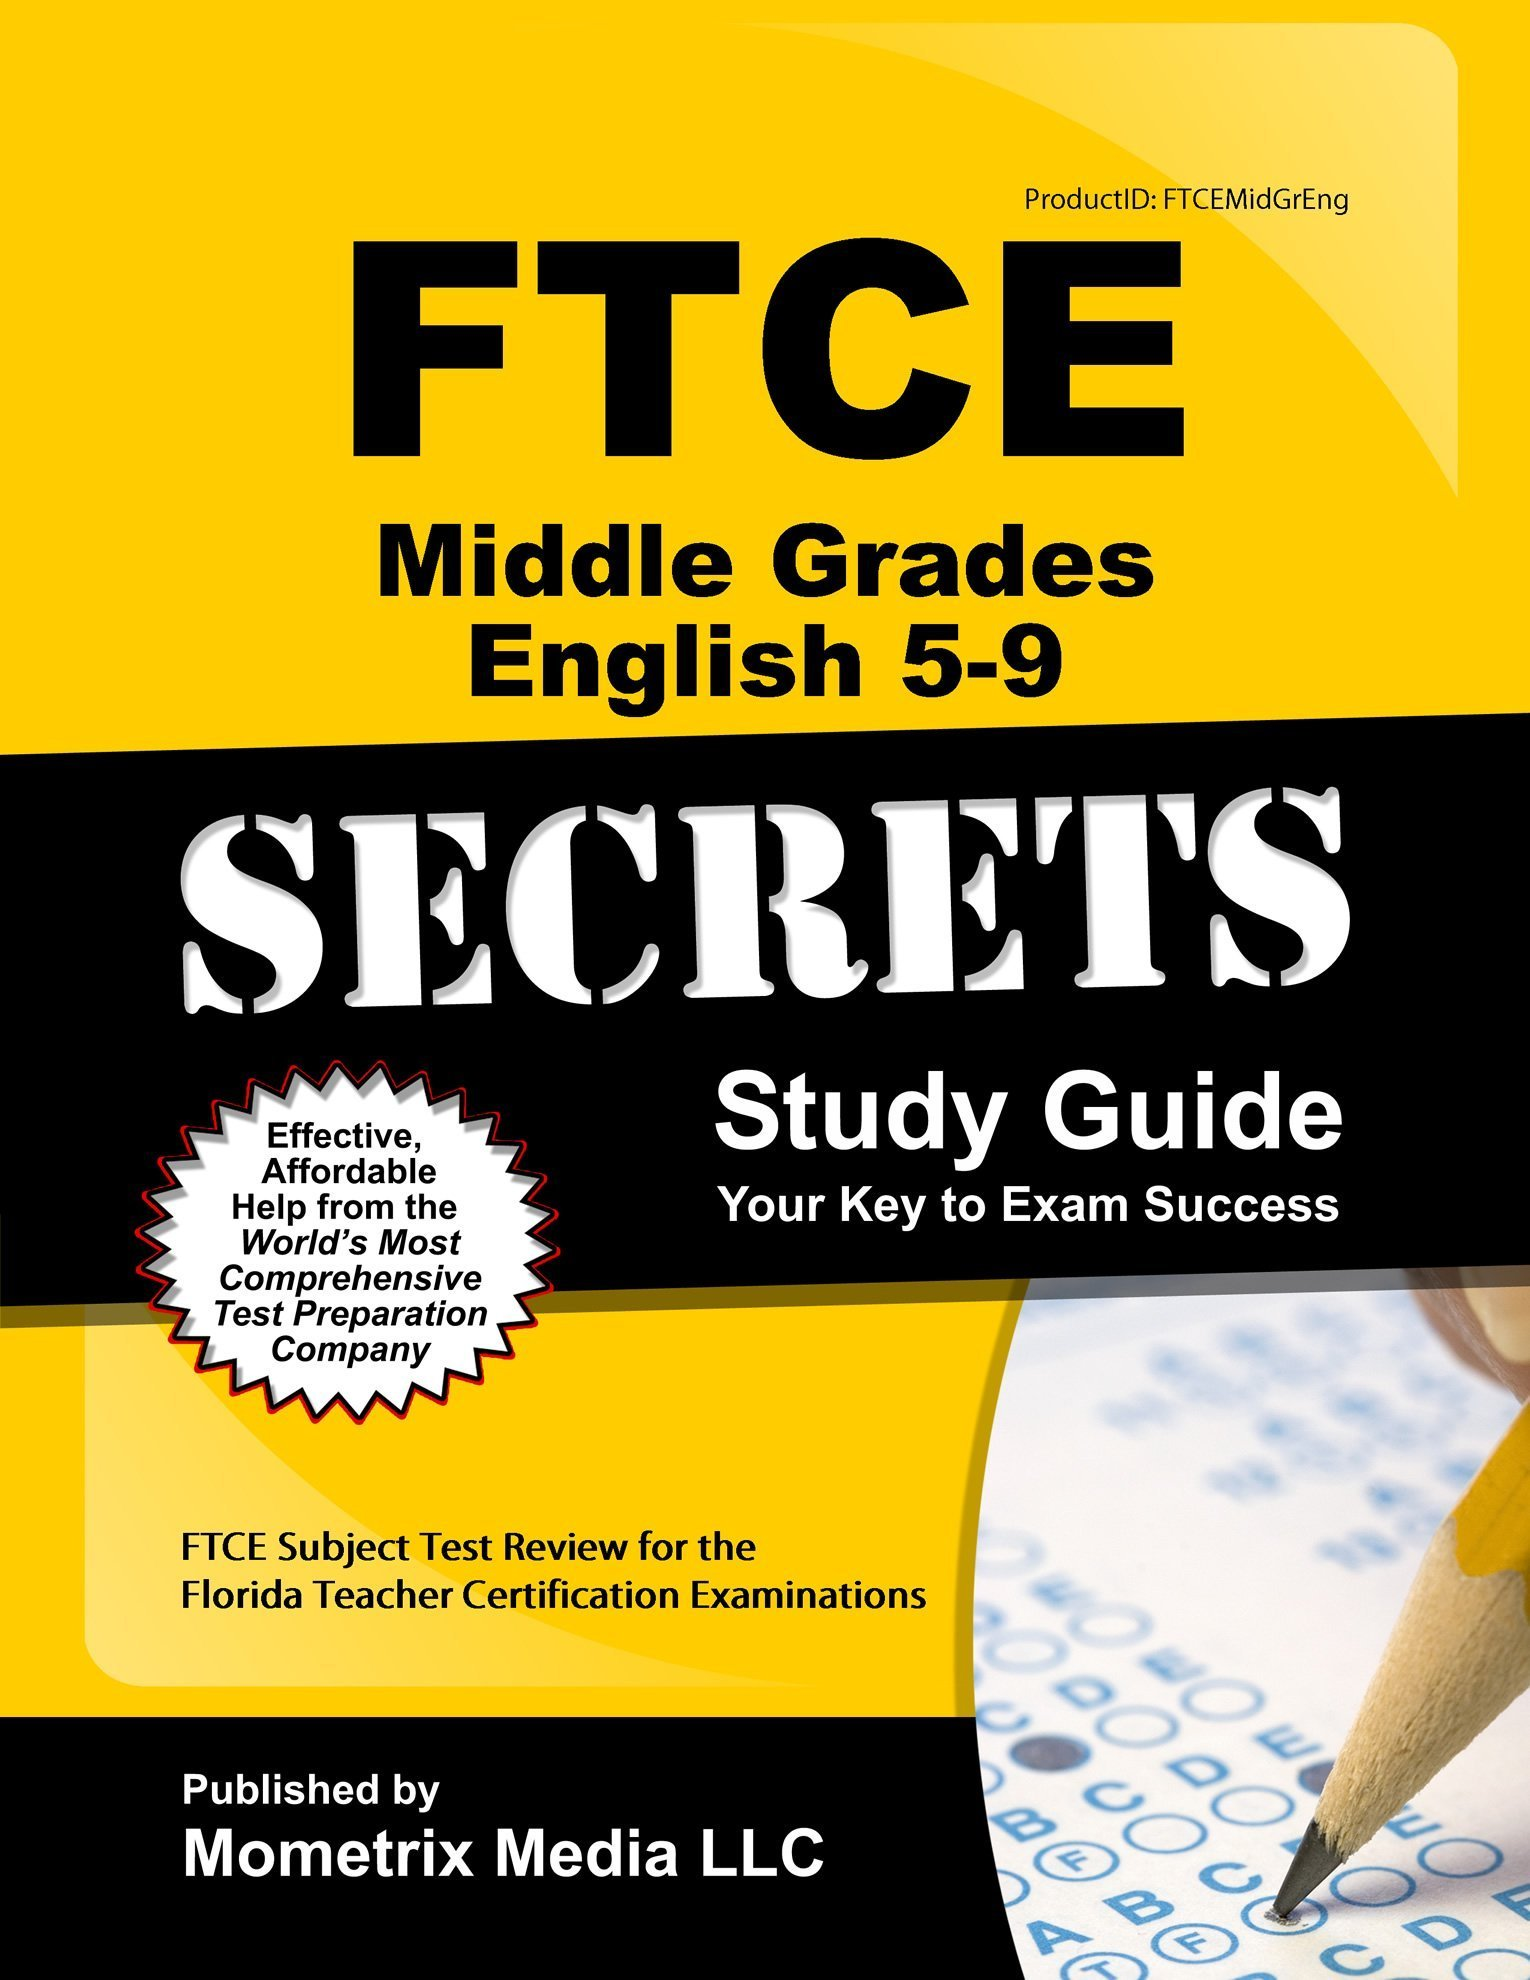 FTCE Middle Grades English 5-9 Secrets Study Guide: FTCE Subject Test  Review for the Florida Teacher Certification Examinations: Amazon.com: Books